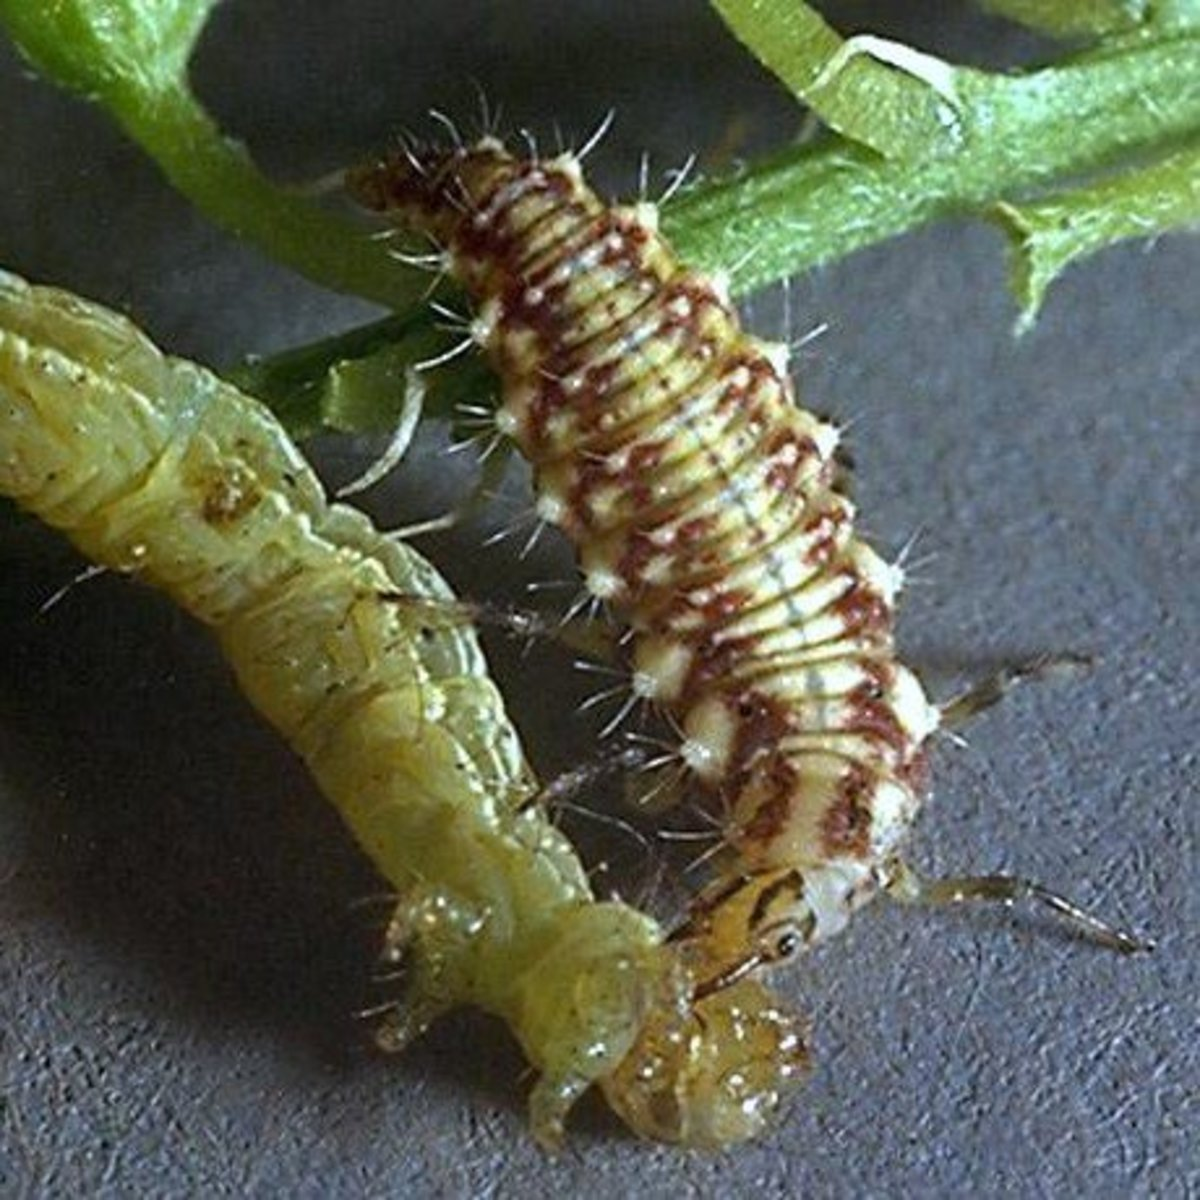 Lacewing larvae are very predatory. Here, a lacewing larva attacks and eats a catepillar.